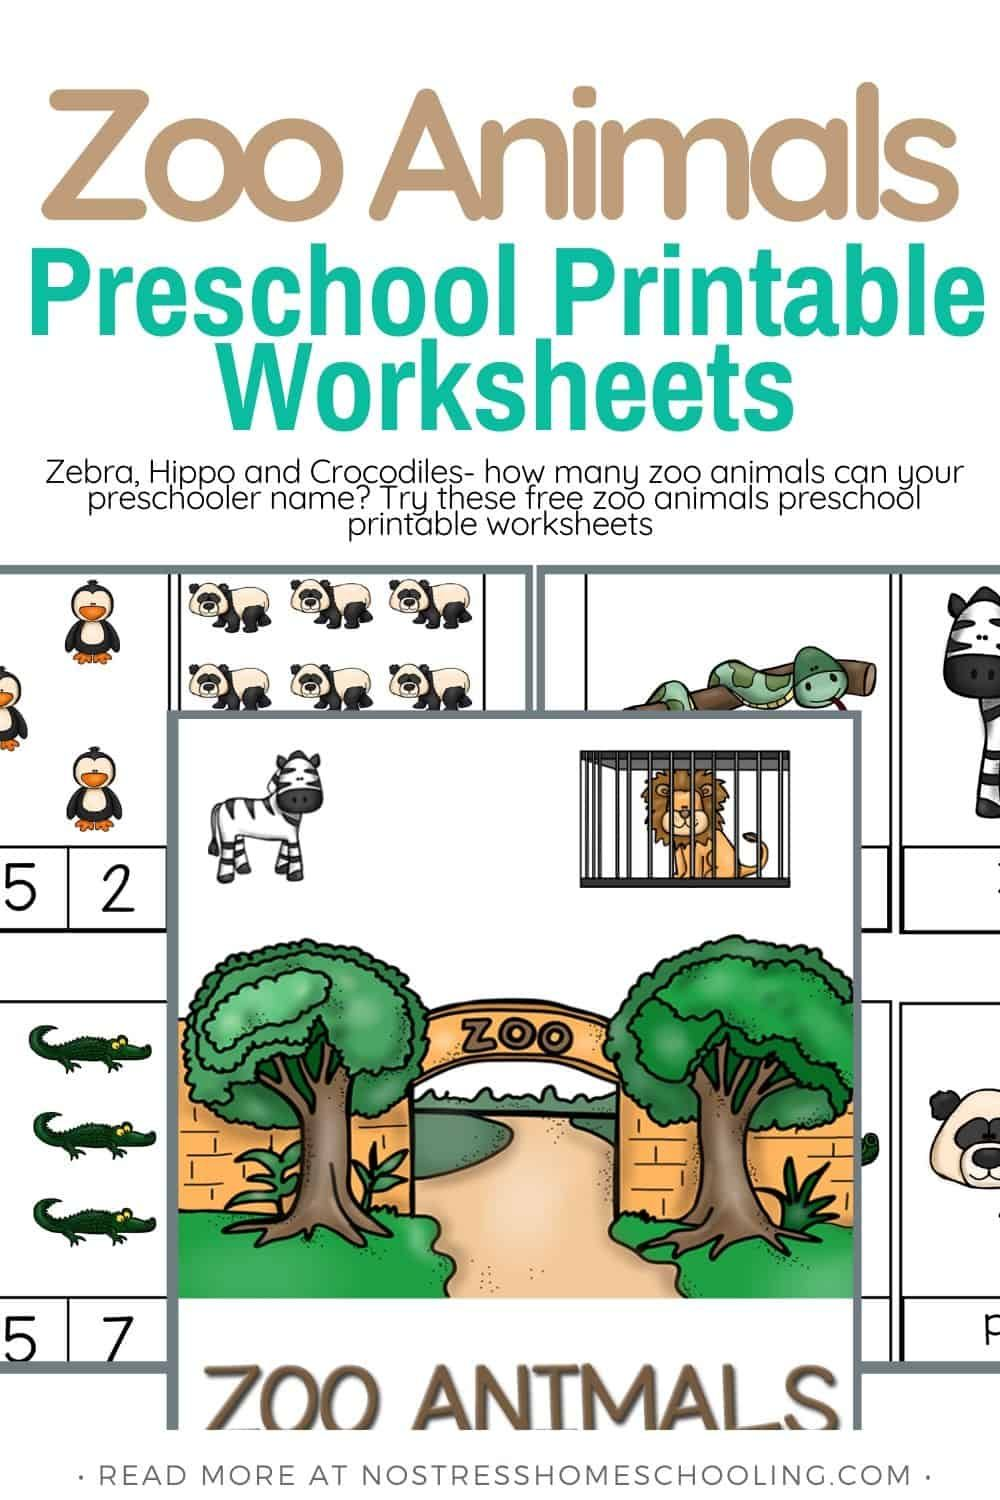 Free Printable Zoo Animals Worksheets in 2020 Printable